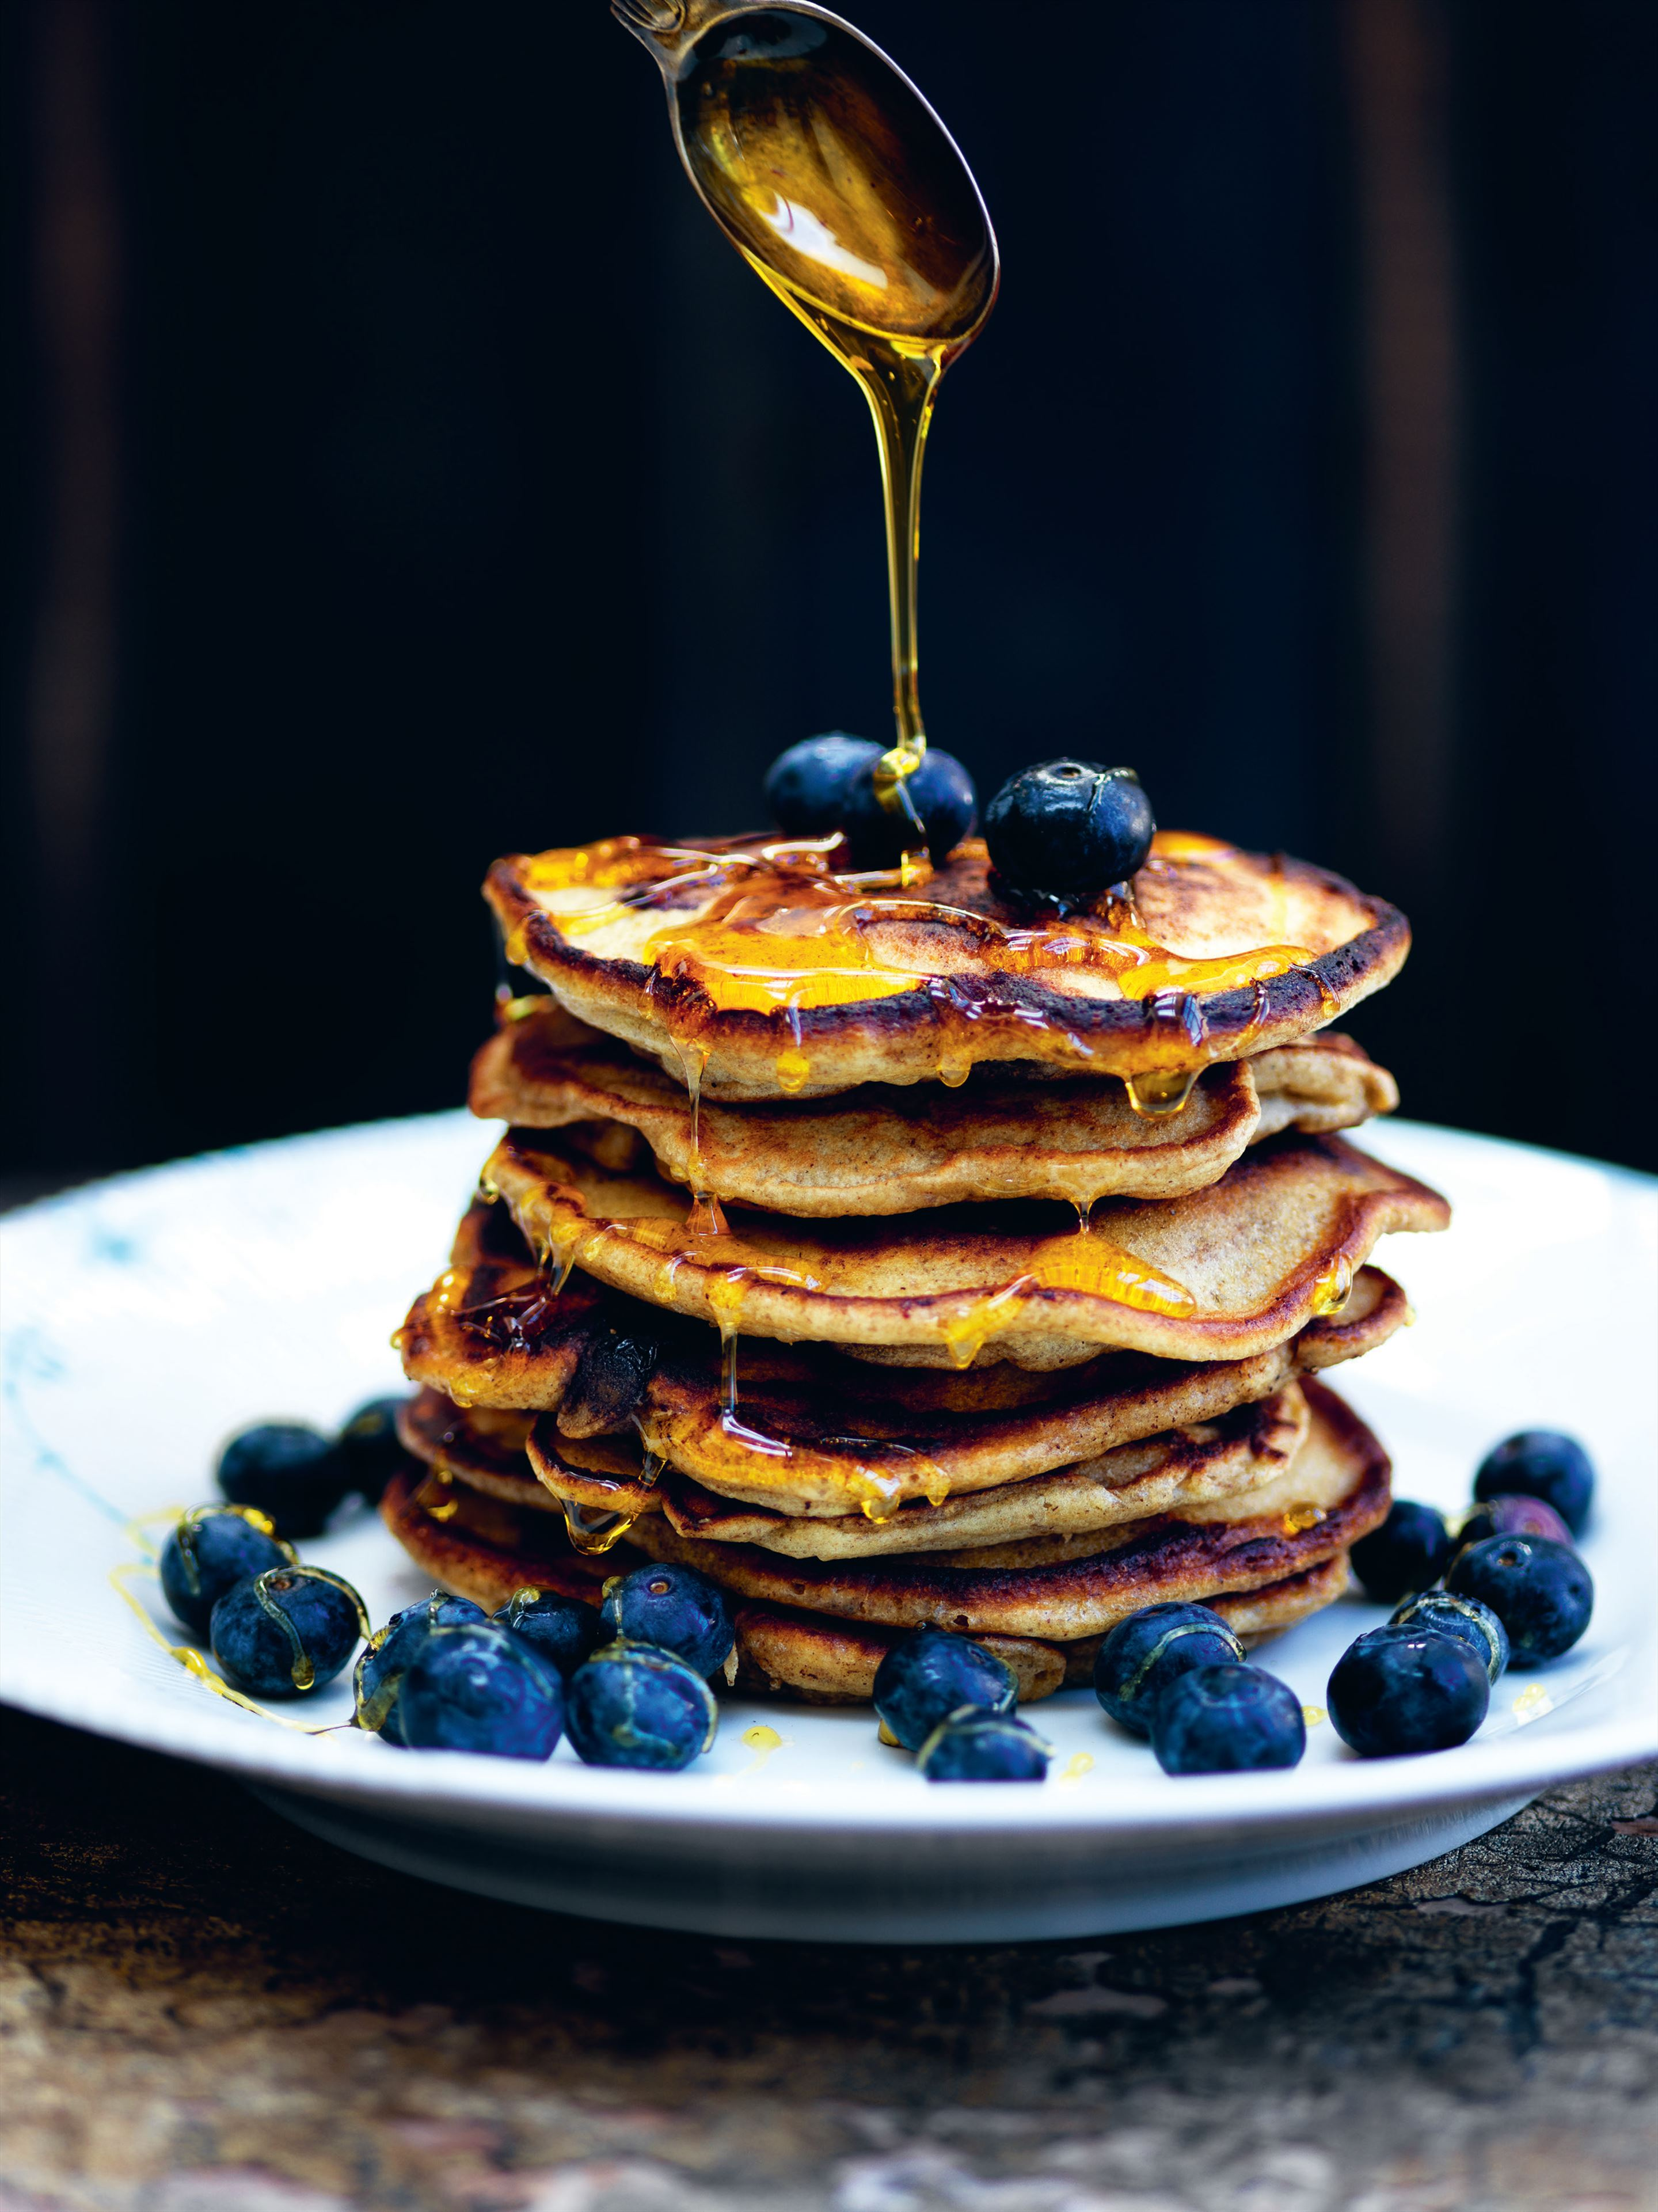 Rye pancakes with blueberries and golden syrup